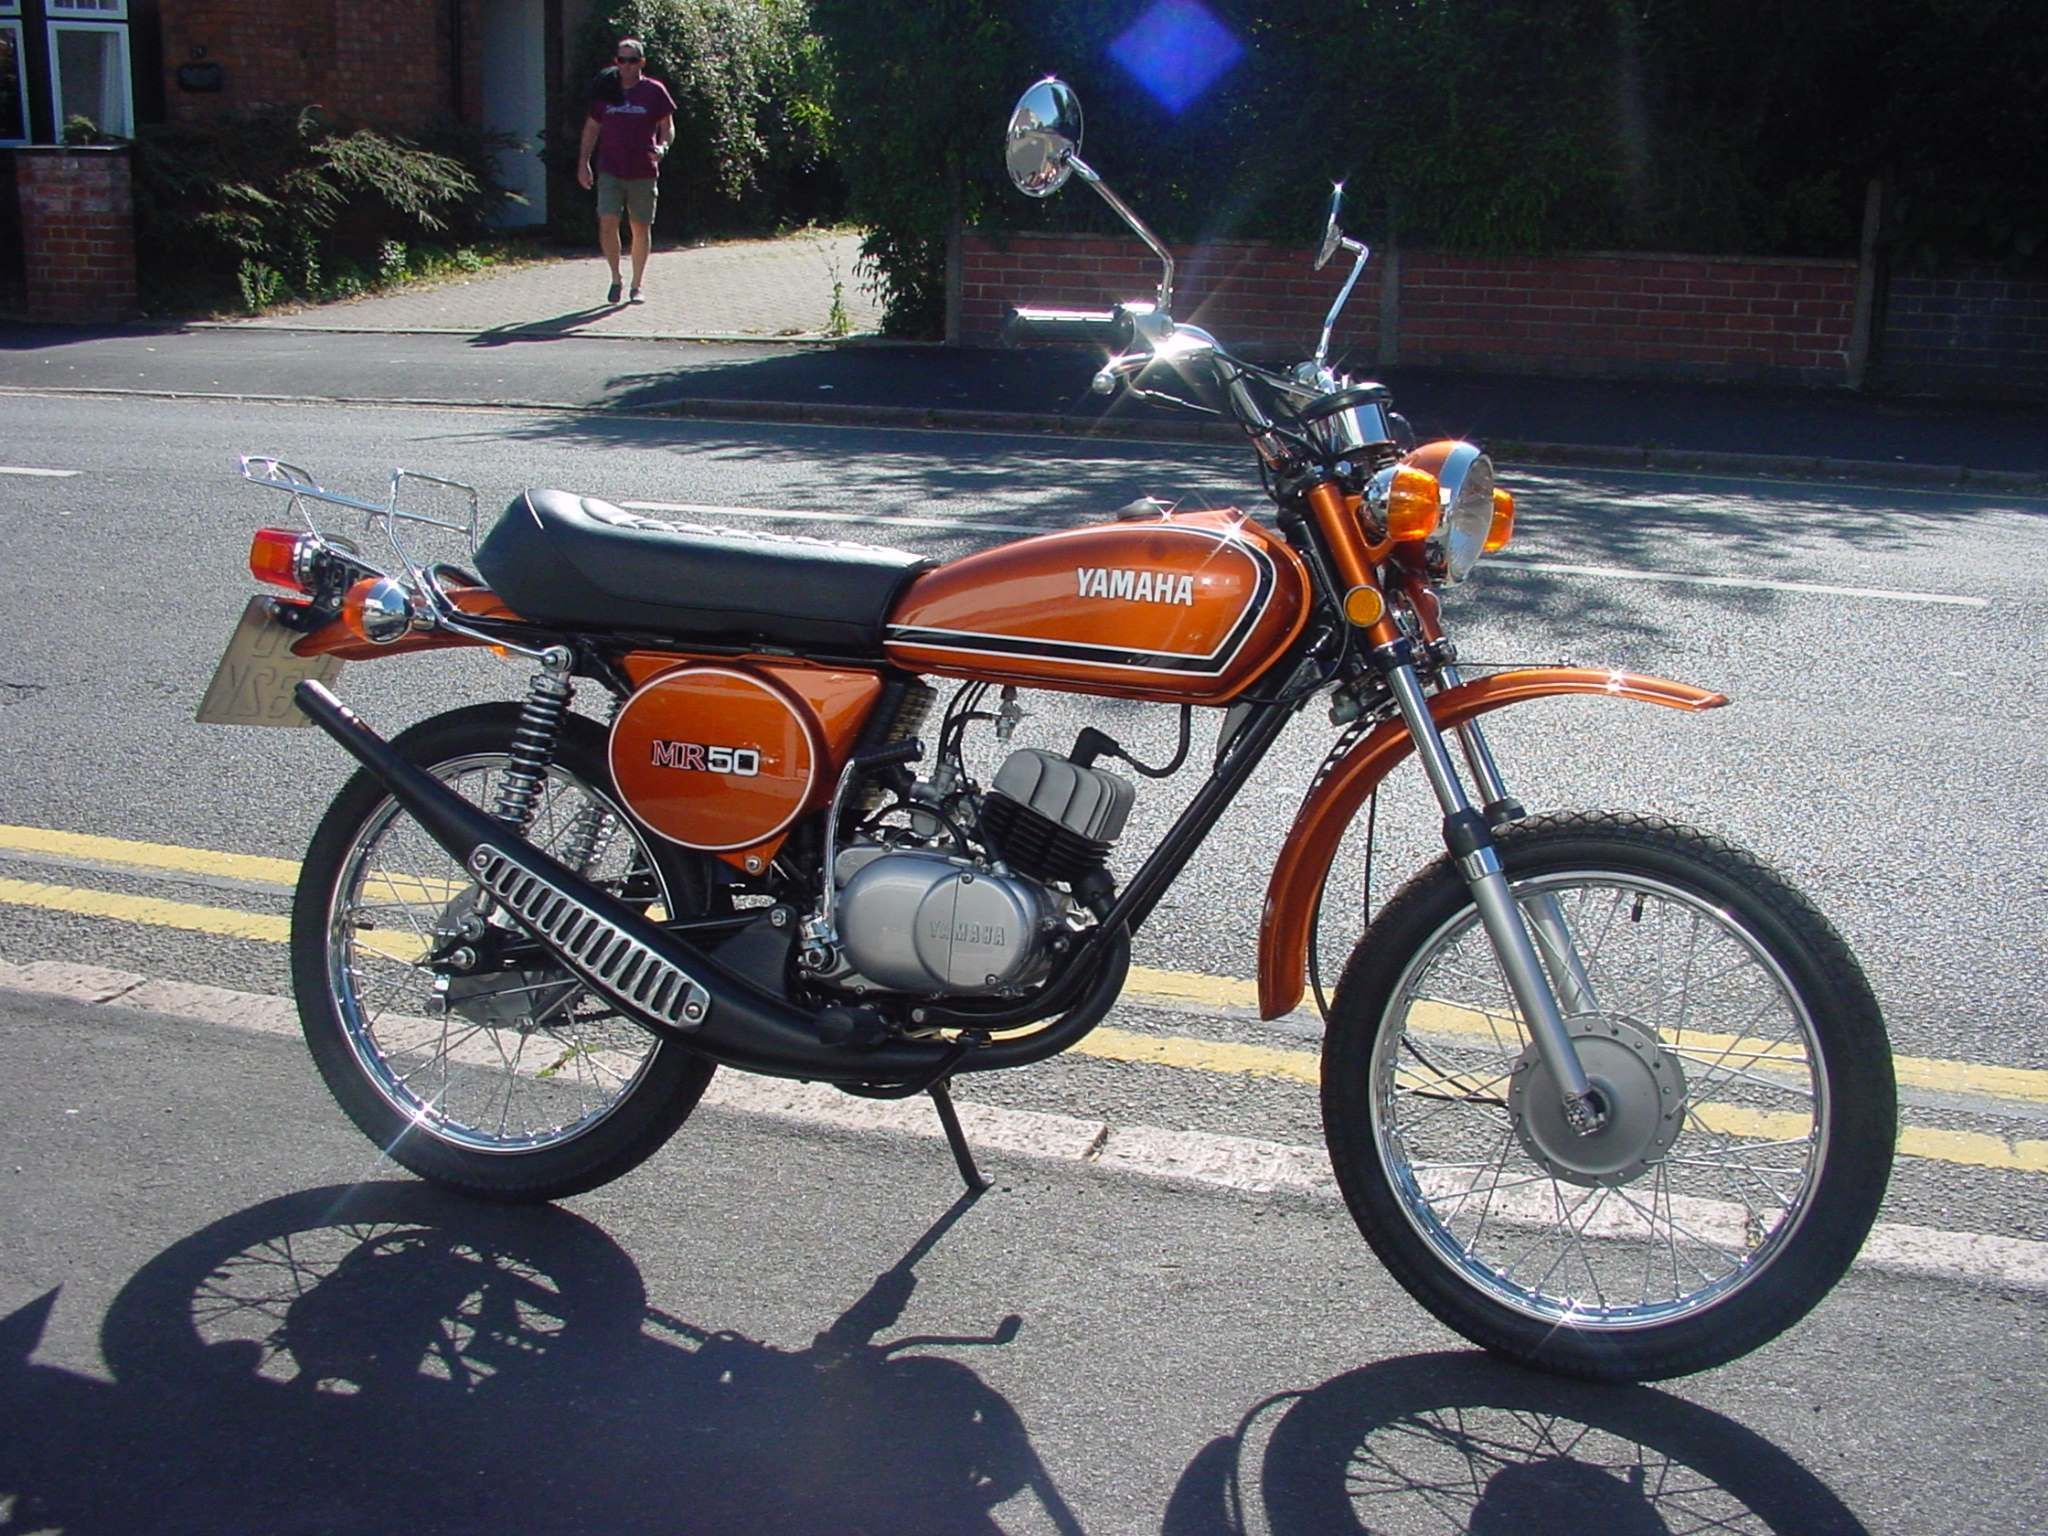 Yamaha MR50 1972